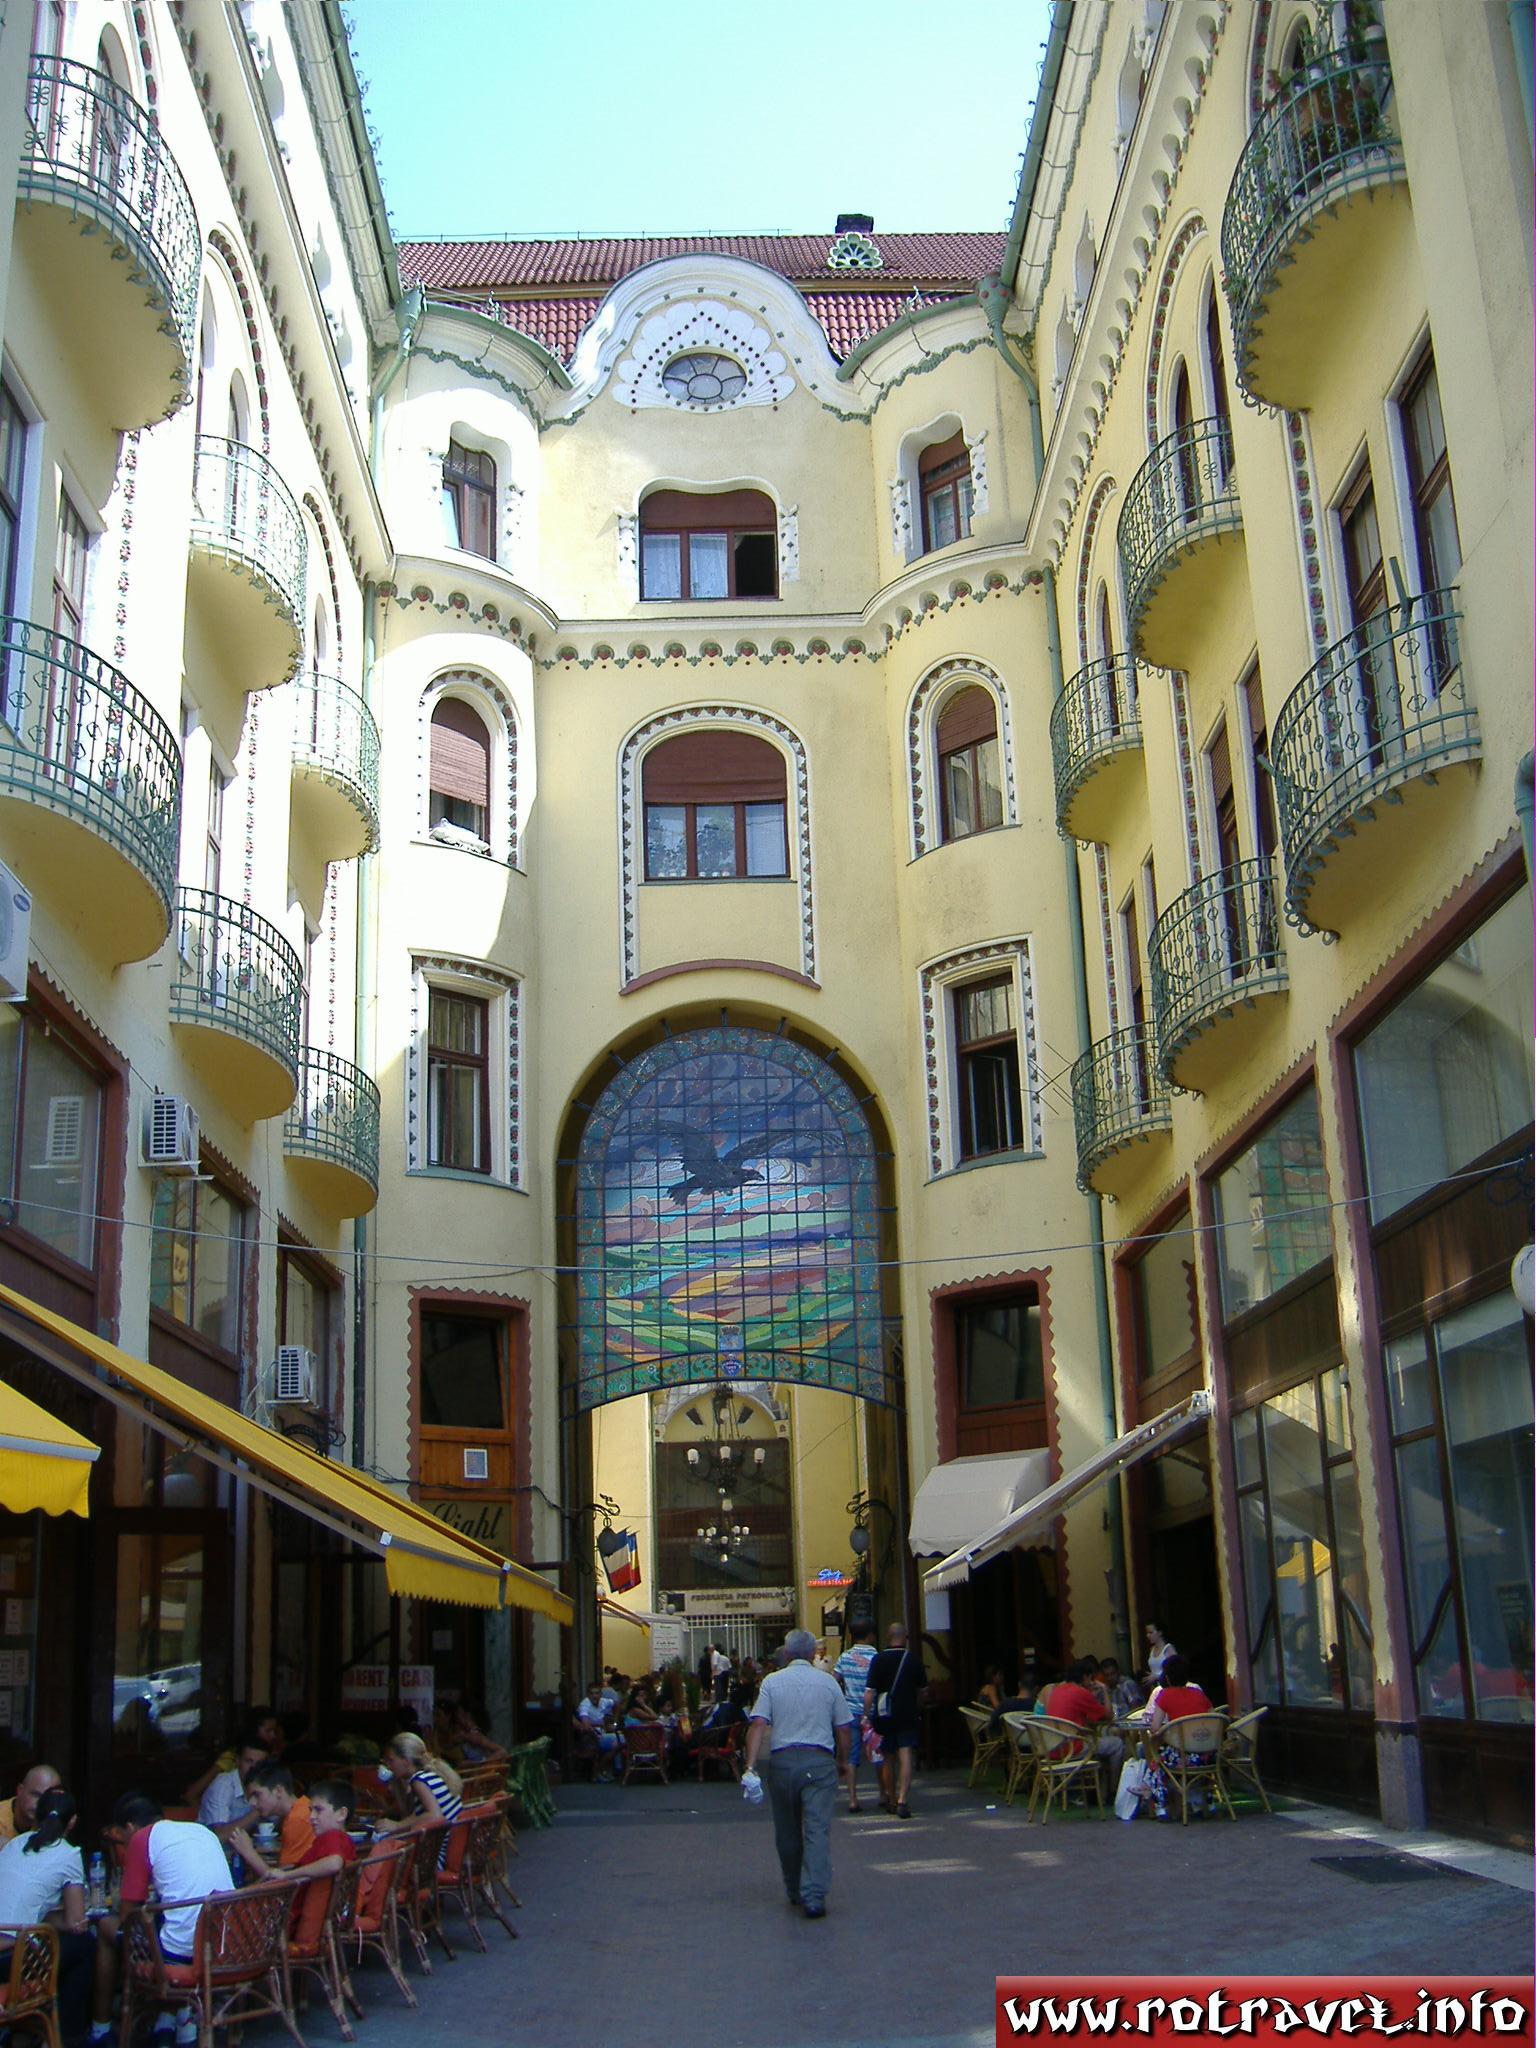 Pasajul Vulturul Negru (Black Eagle Passage) was build between 1907-1908 together with the Palace with the same name